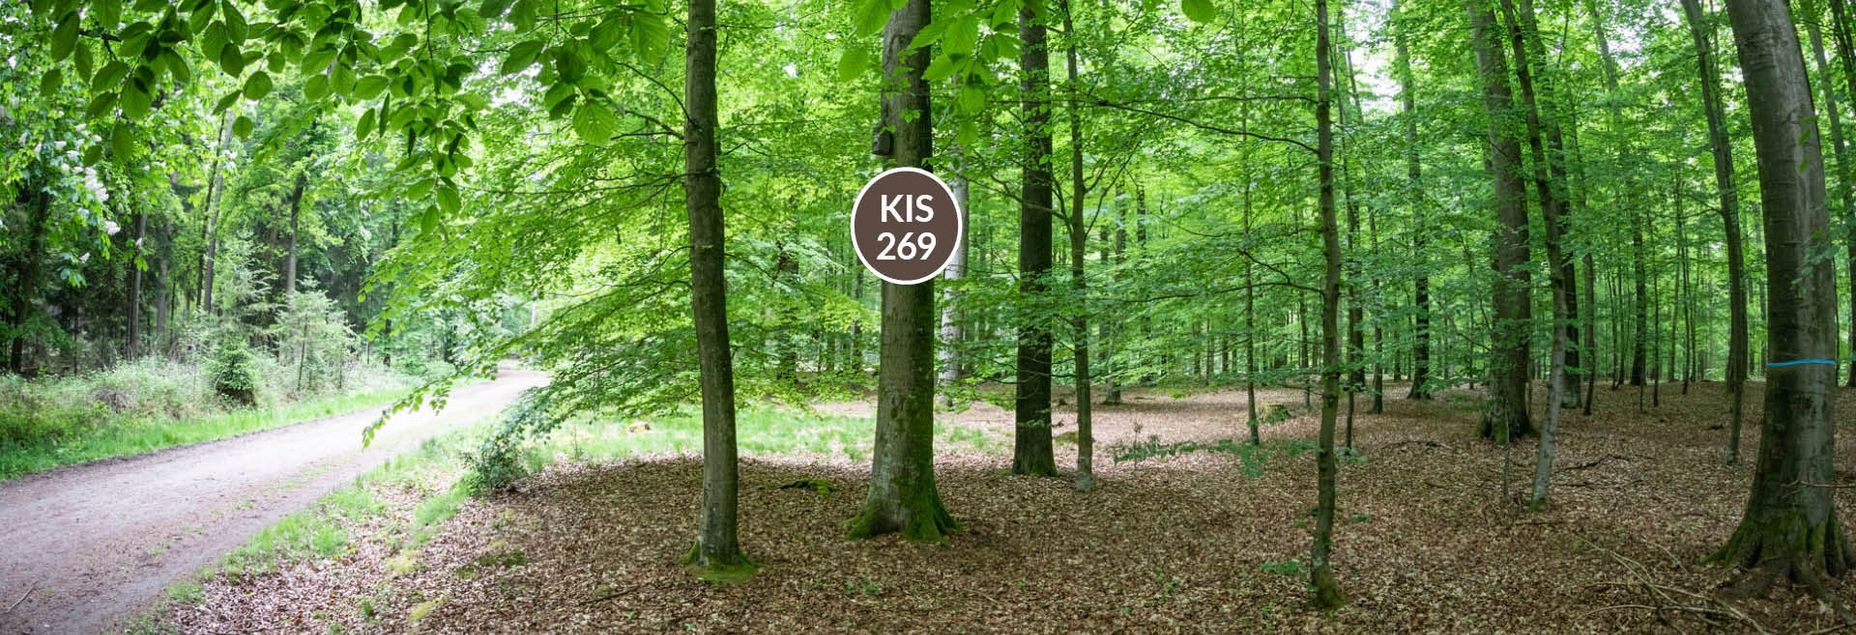 FriedWald-Onlineshop KIS 269